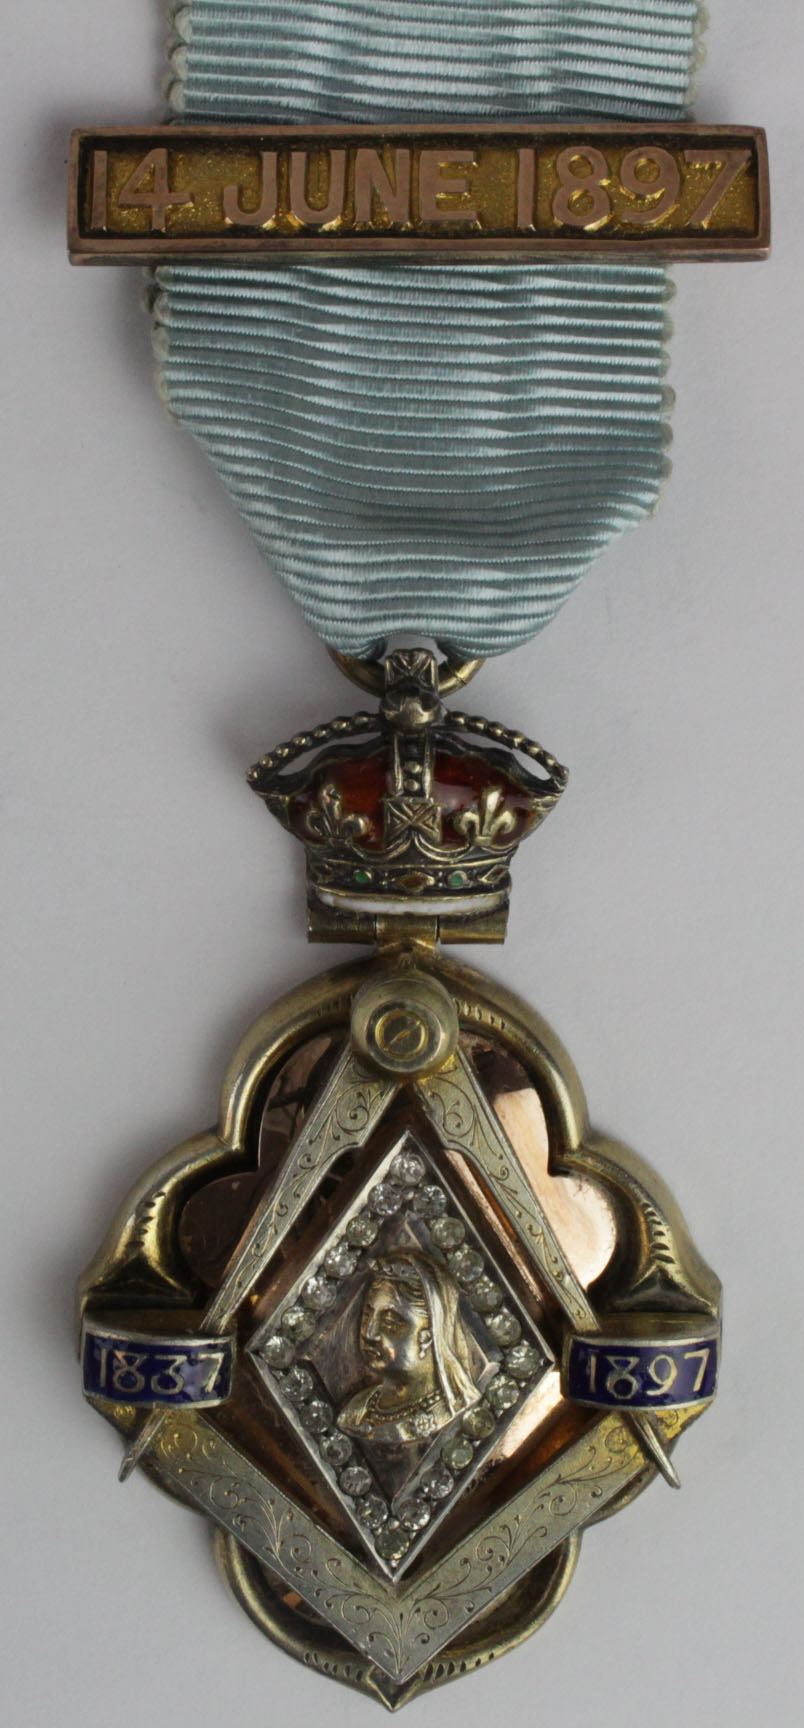 Lot 1121 - Masonic silver gilt & brilliants 1897 Queen Victoria's Diamond Jubilee medal with 14th June 1897